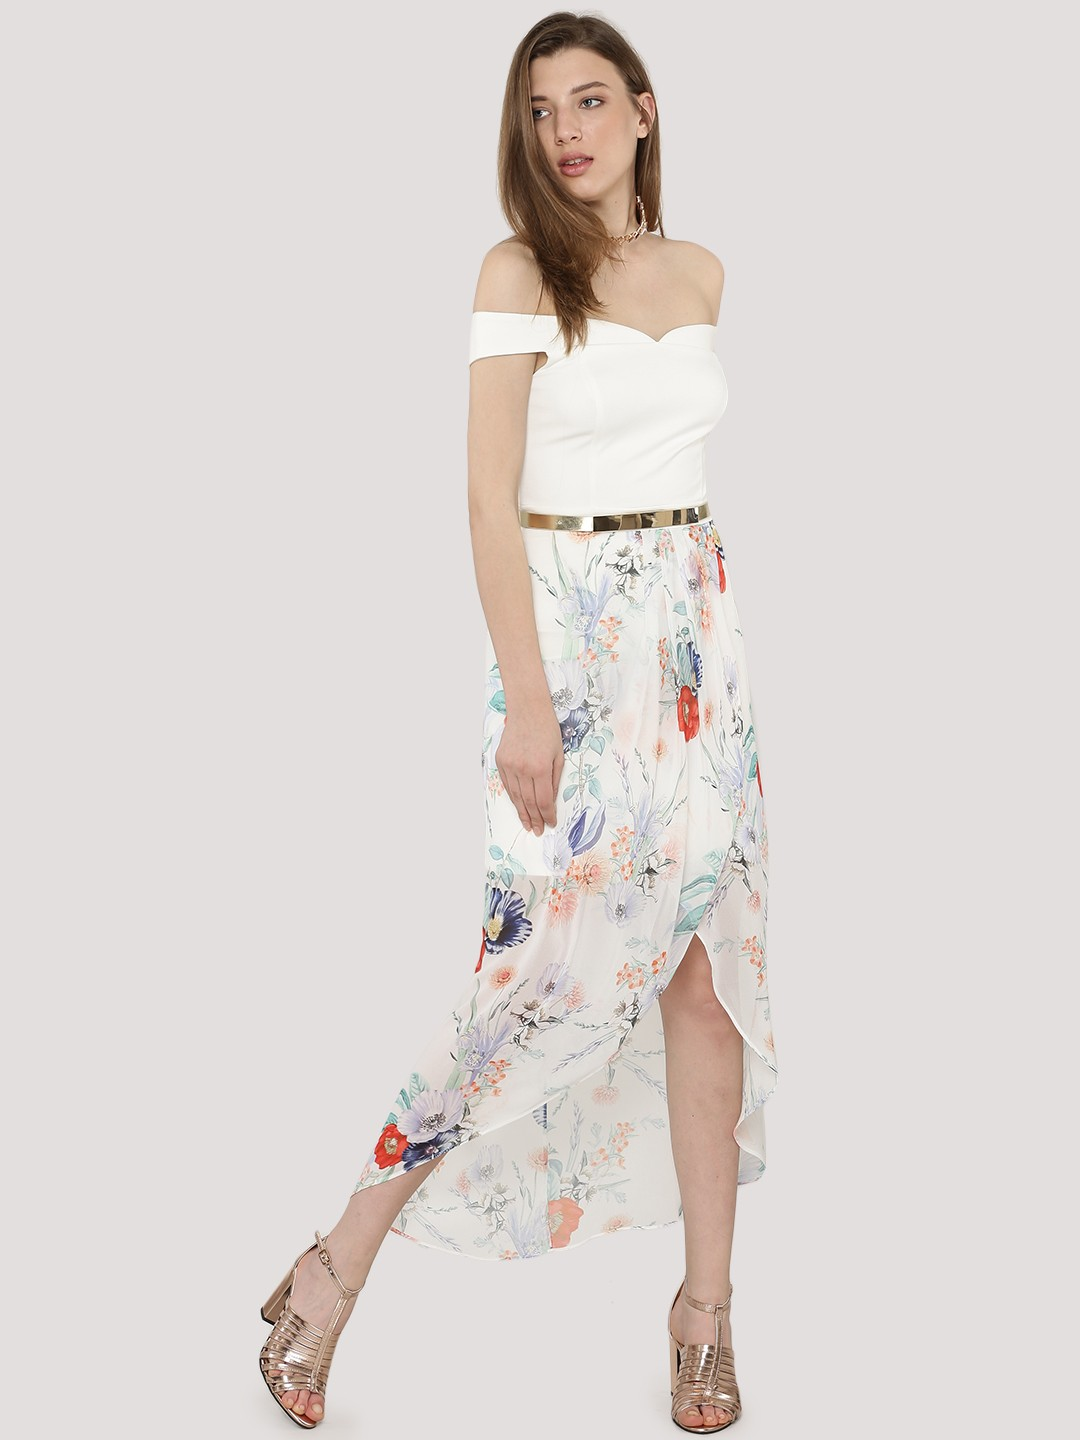 Get This Dress And Accessories At Its Fashion Metro In: Buy FOREVER NEW 2 In 1 Bandeau Hi-Low Dress For Women